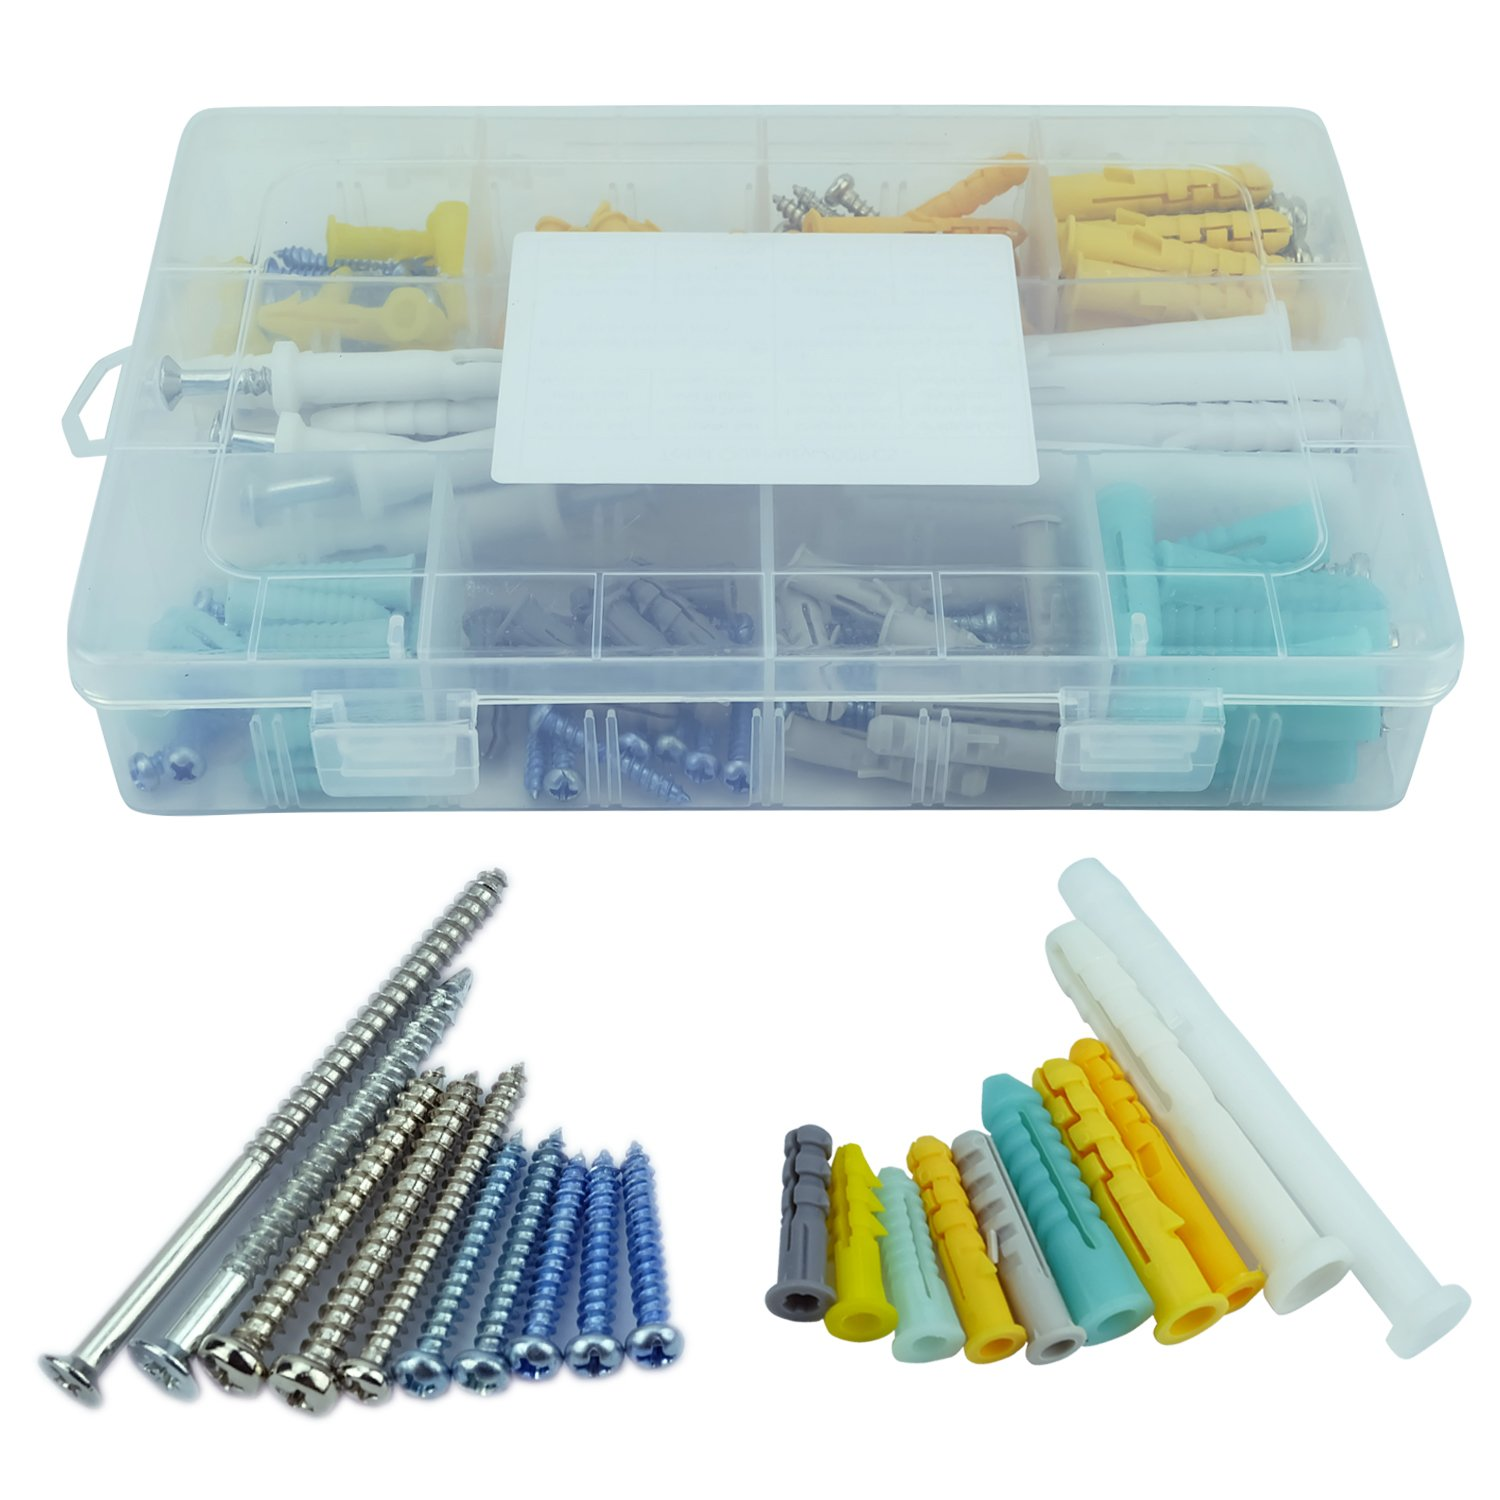 Mengar 200Pcs Assorted Sizes Hollow Self Drilling Drywall Anchors Screws Assortment Set Kit Plastic Self Drilling Drywall Anchors Assortment with Screws